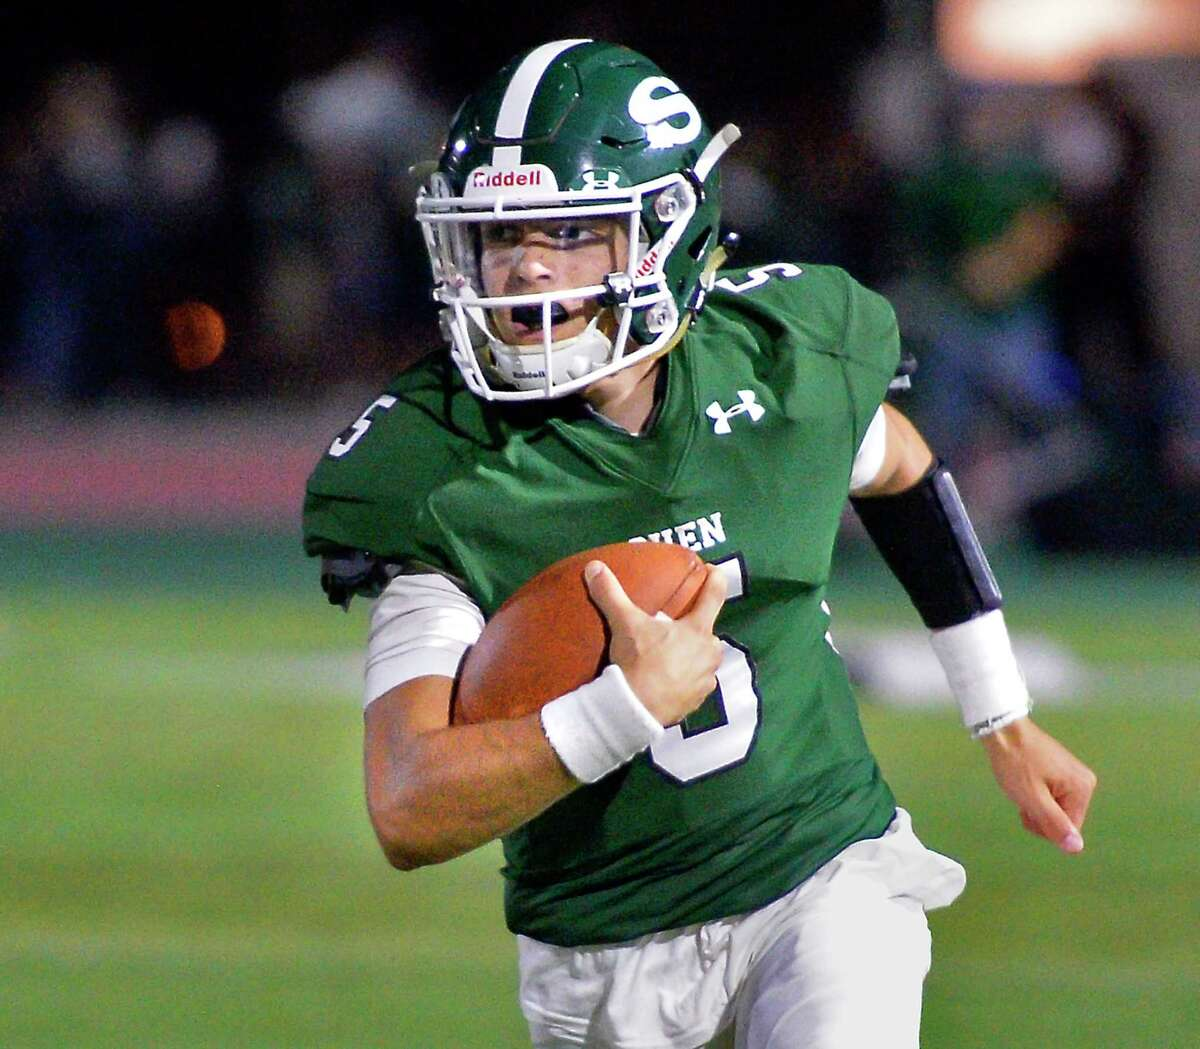 Shenendehowa quarterback Brendan Beloit scrambles to safety during Friday night's game against Colonie High Sept. 7, 2018 in Clifton Park, NY. (John Carl D'Annibale/Times Union)